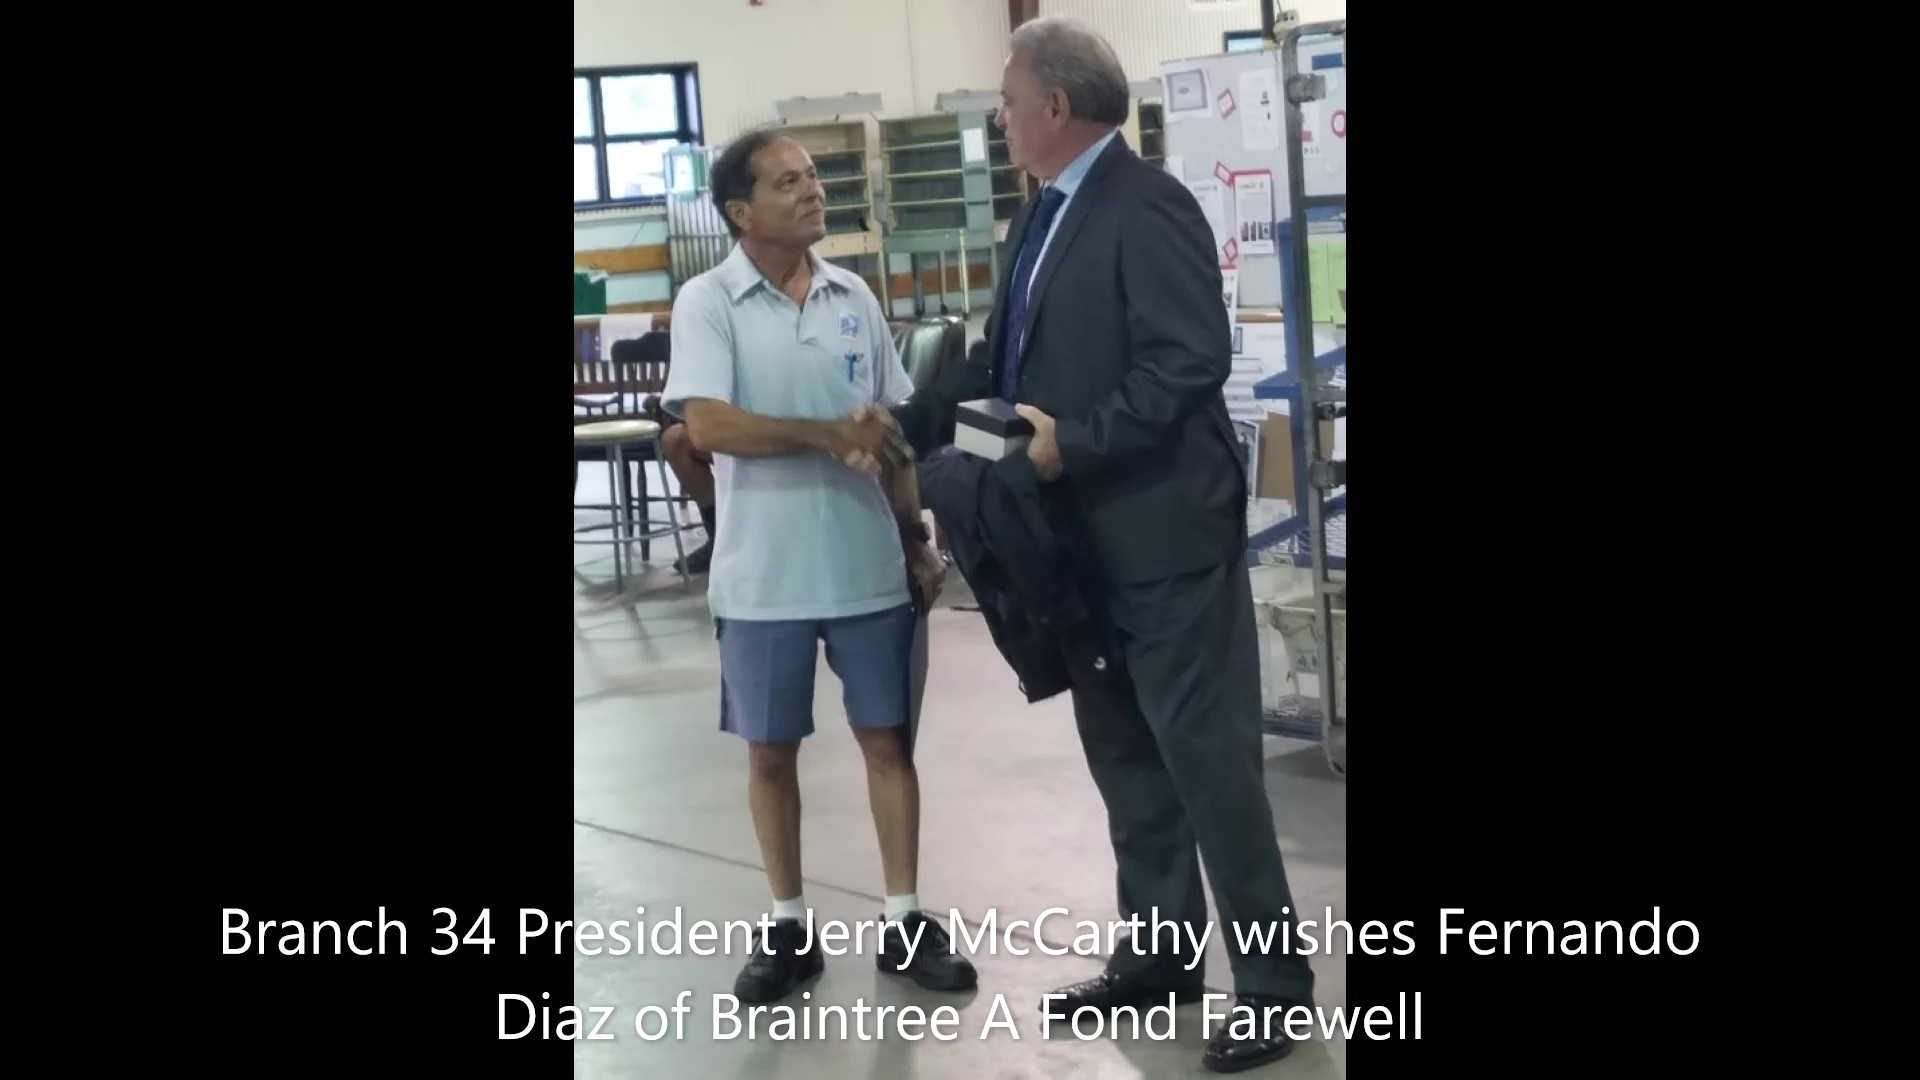 Fernando-Diaz-Braintree-Retires-62019-3_Large_Moment